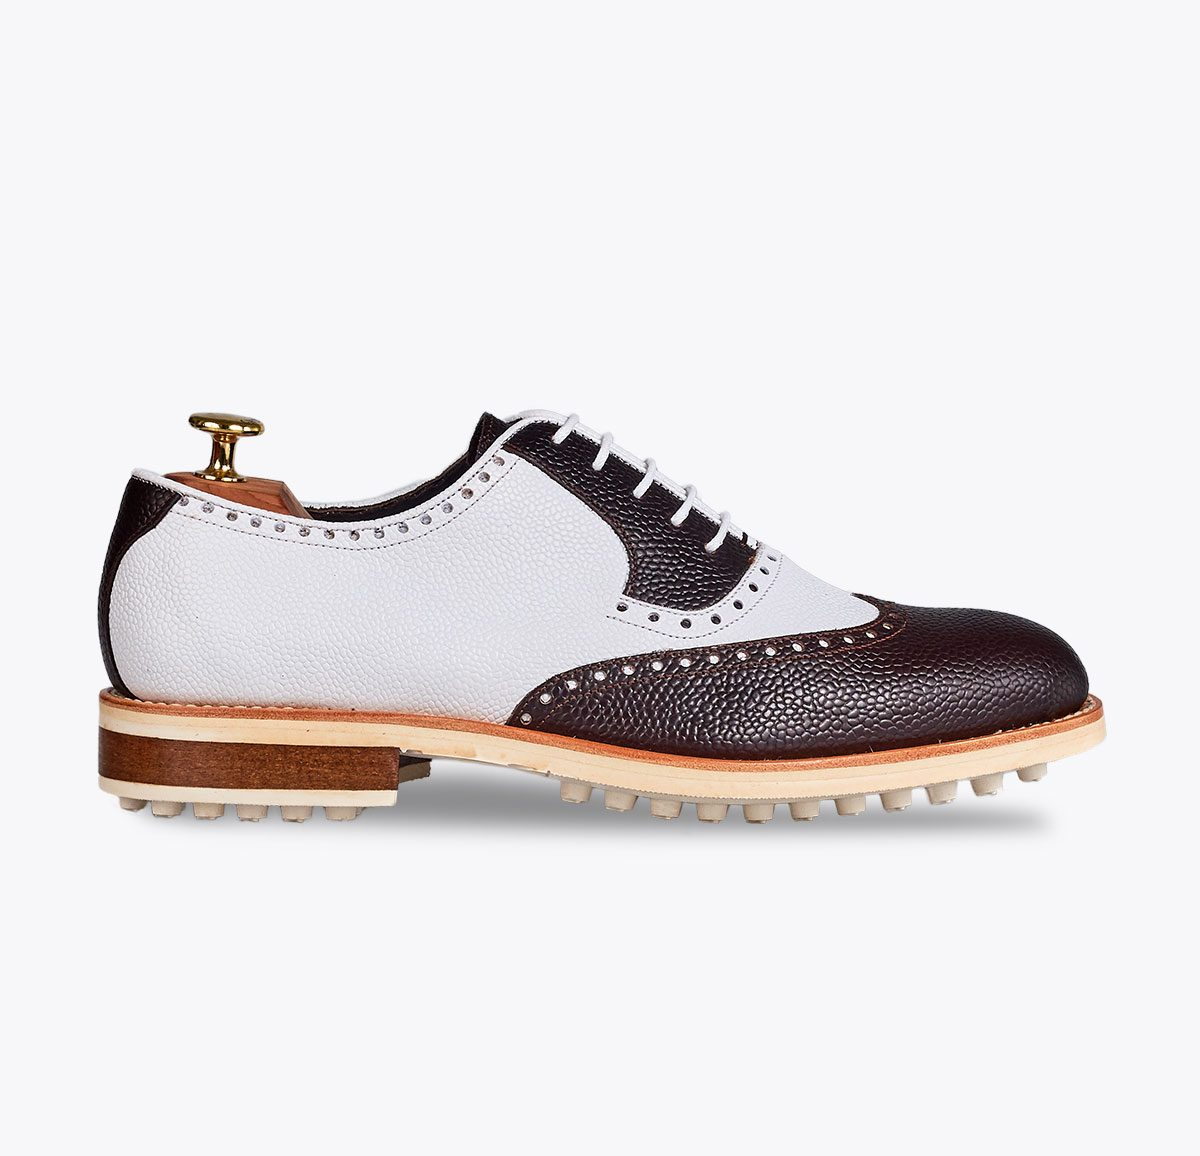 Zapato de golf Vegas, tailor made shoes, schuhe nach mass en mandalashoes Santanyí Mallorca